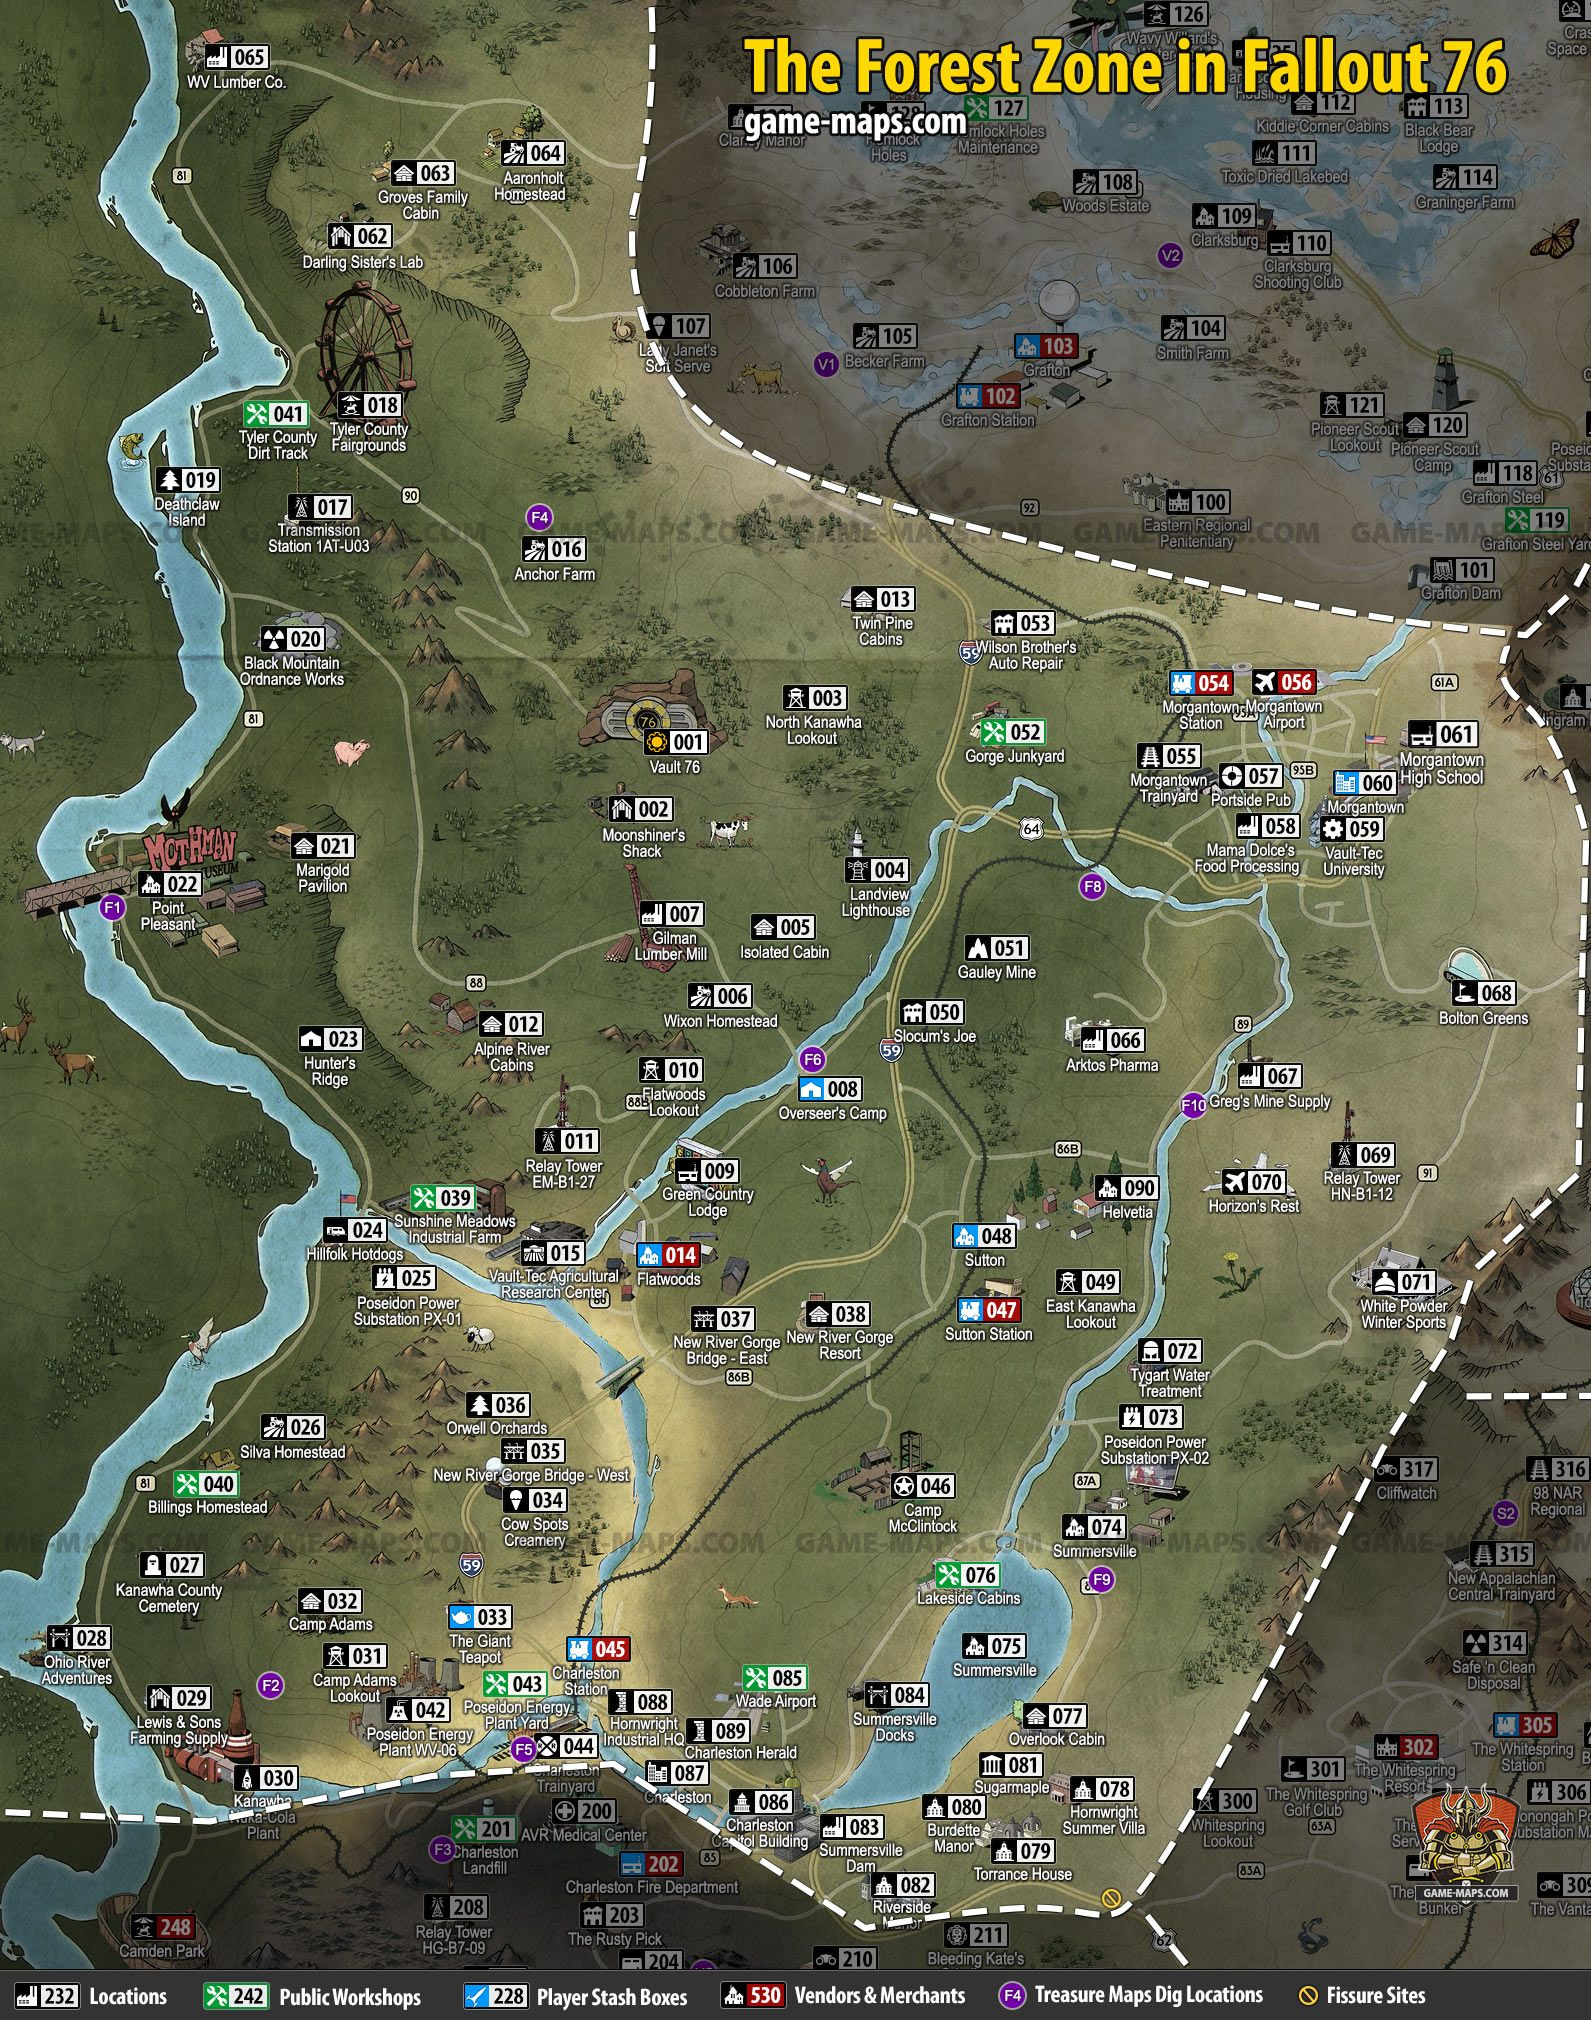 Fallout 76 Resource Map : fallout, resource, Curtis, Murphy, (curtisrkerry), Profile, Pinterest